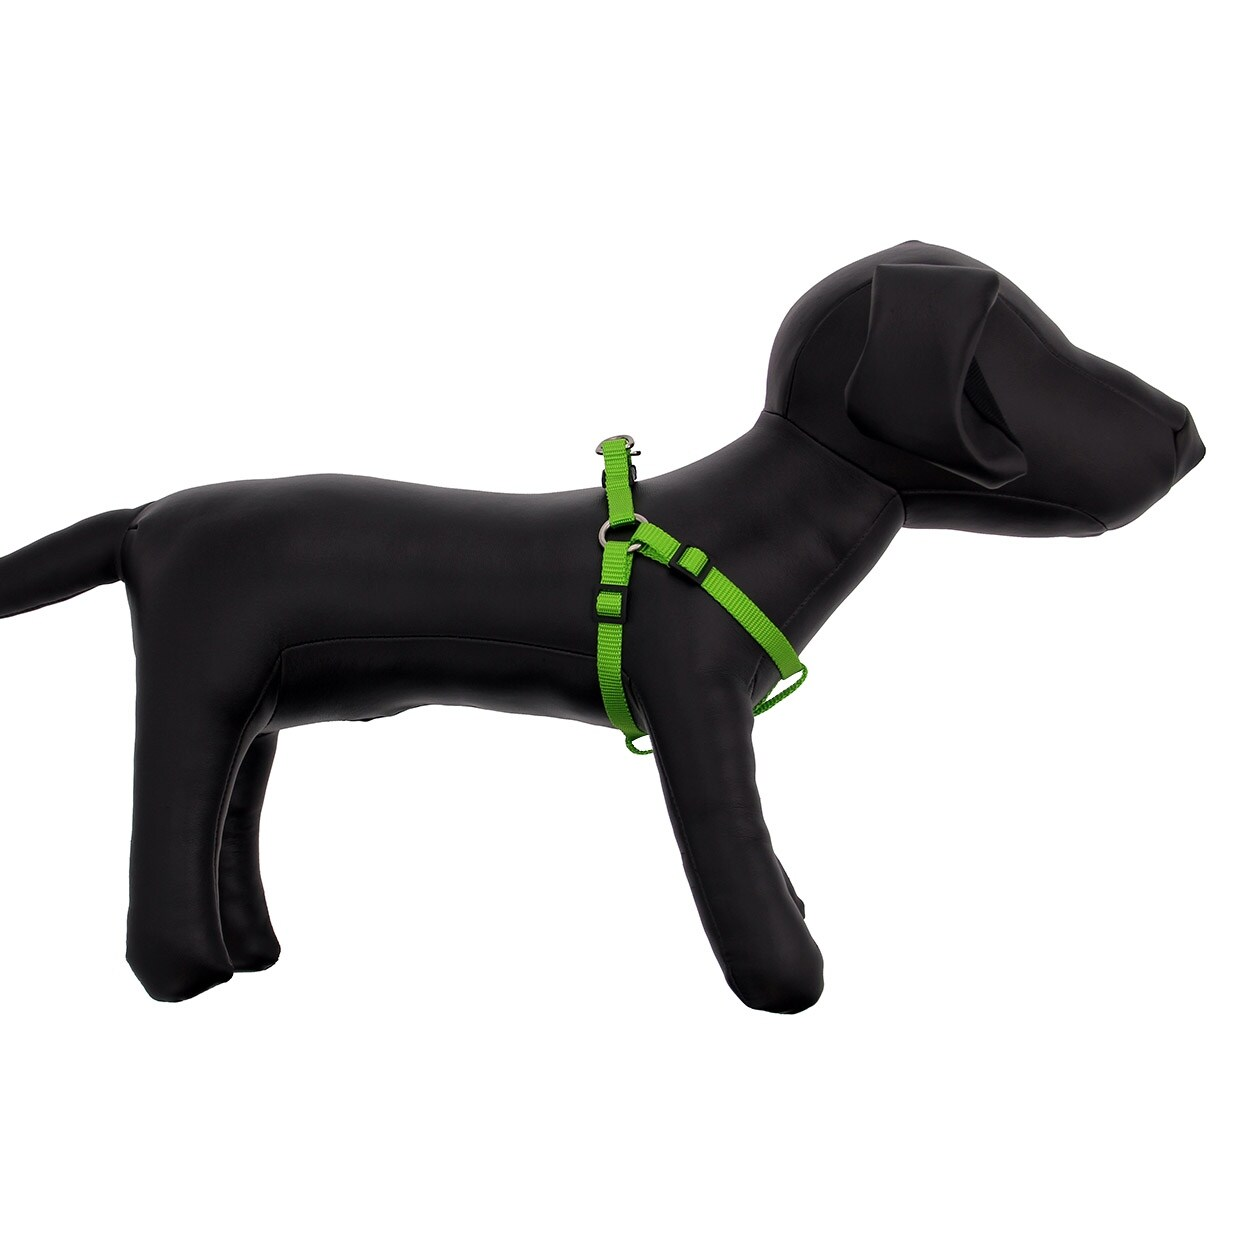 Guardian Gear Two-Step Dog Harness - Electric Lime (Electric Lime - 9-15)